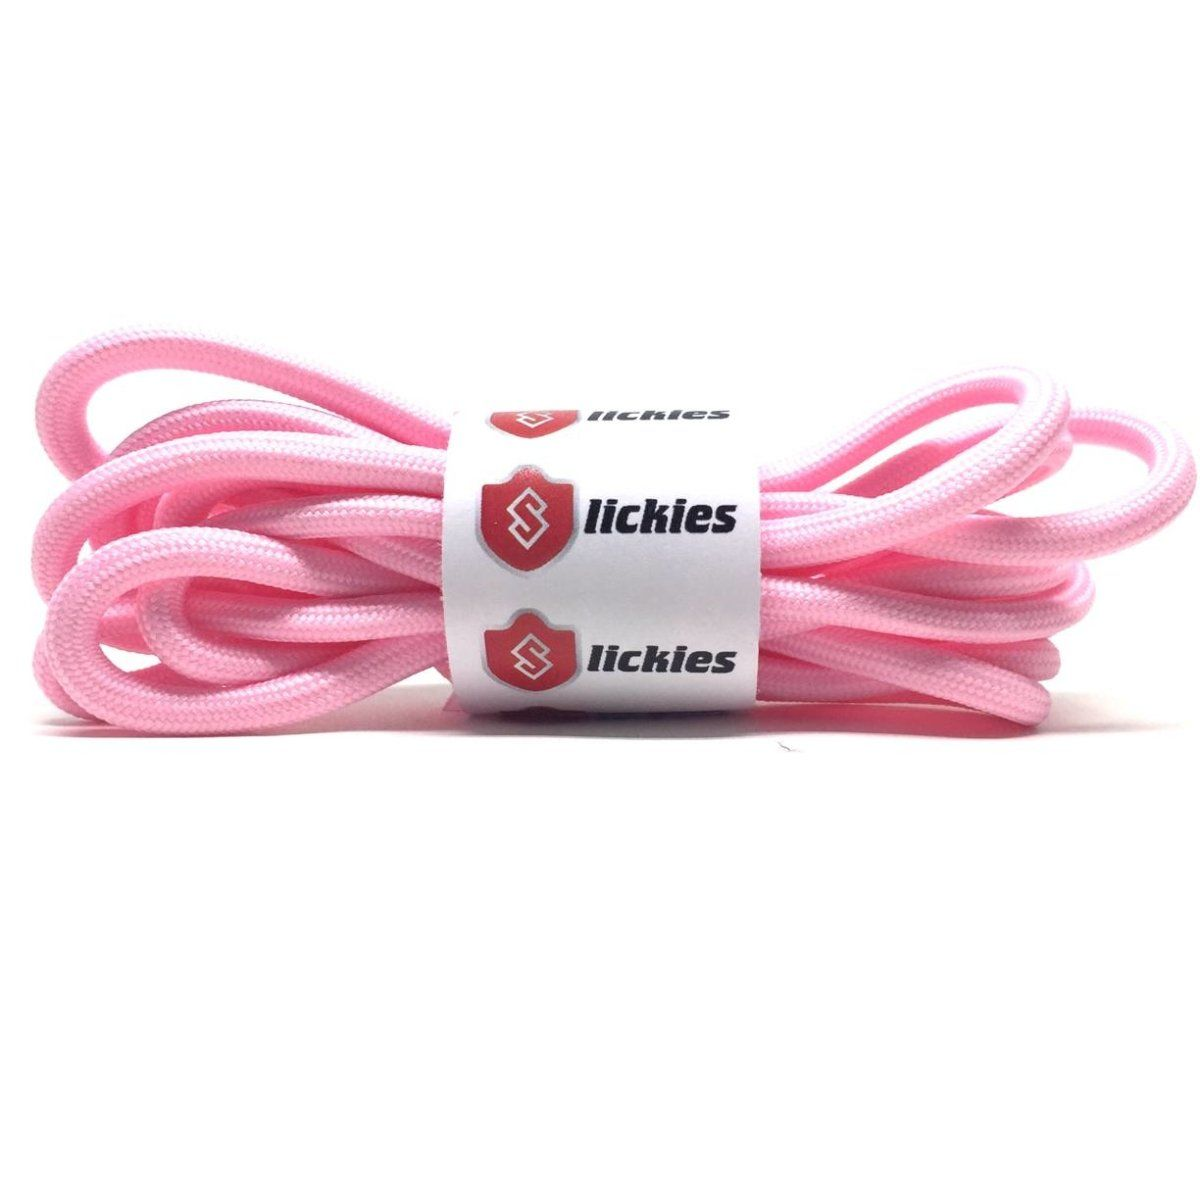 Rope Laces - BASICS Rope Laces - Pastel Pink